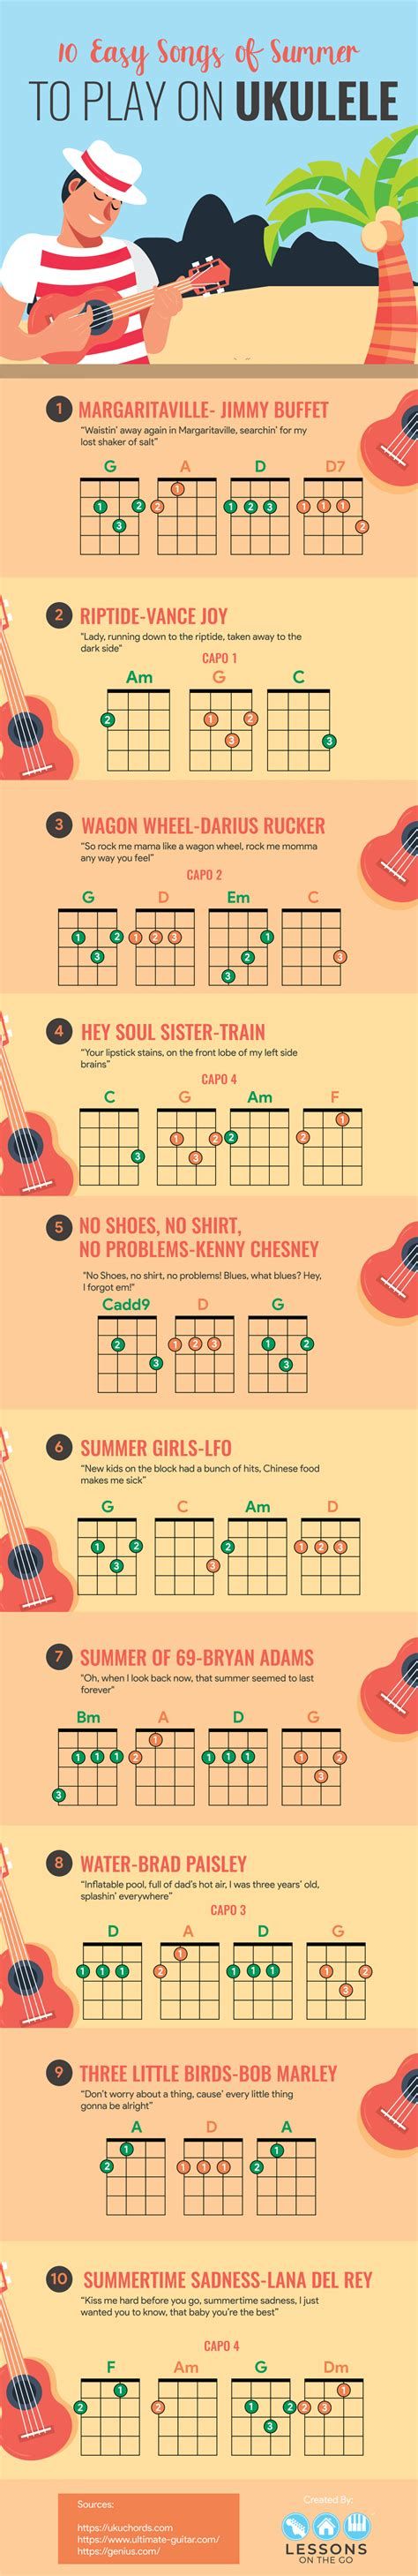 It is a subset of the guitar family of instruments, generally with four strings. 10 Easy Songs of Summer to Play on Ukulele Infographic   Lessons On The Go